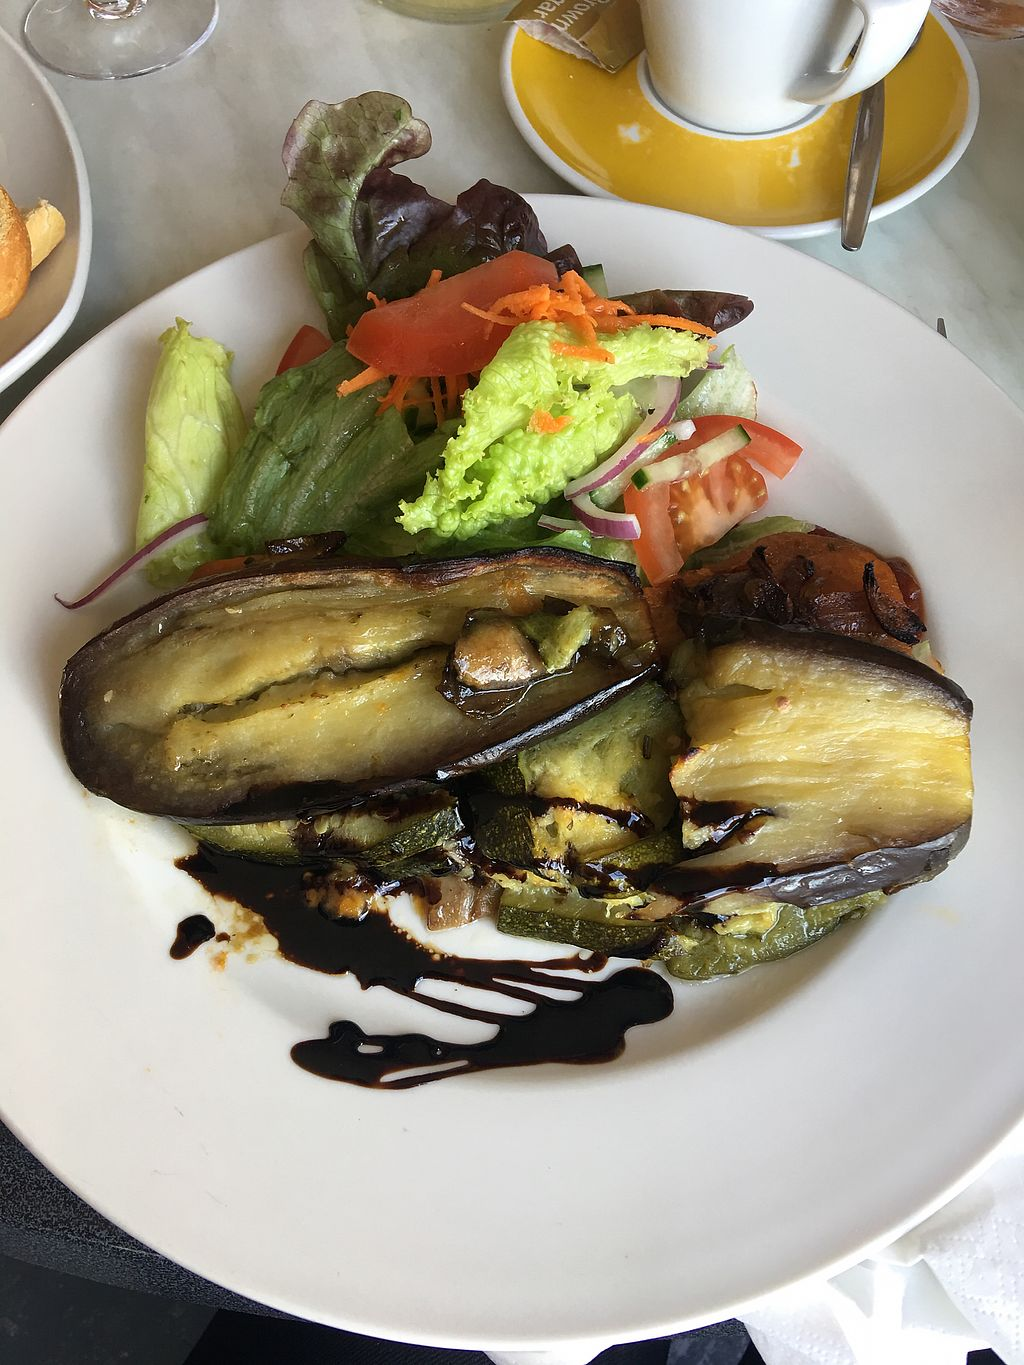 """Photo of O Dowds Cafe  by <a href=""""/members/profile/Picto"""">Picto</a> <br/>Roasted aubergine and salad <br/> August 15, 2017  - <a href='/contact/abuse/image/76014/292963'>Report</a>"""